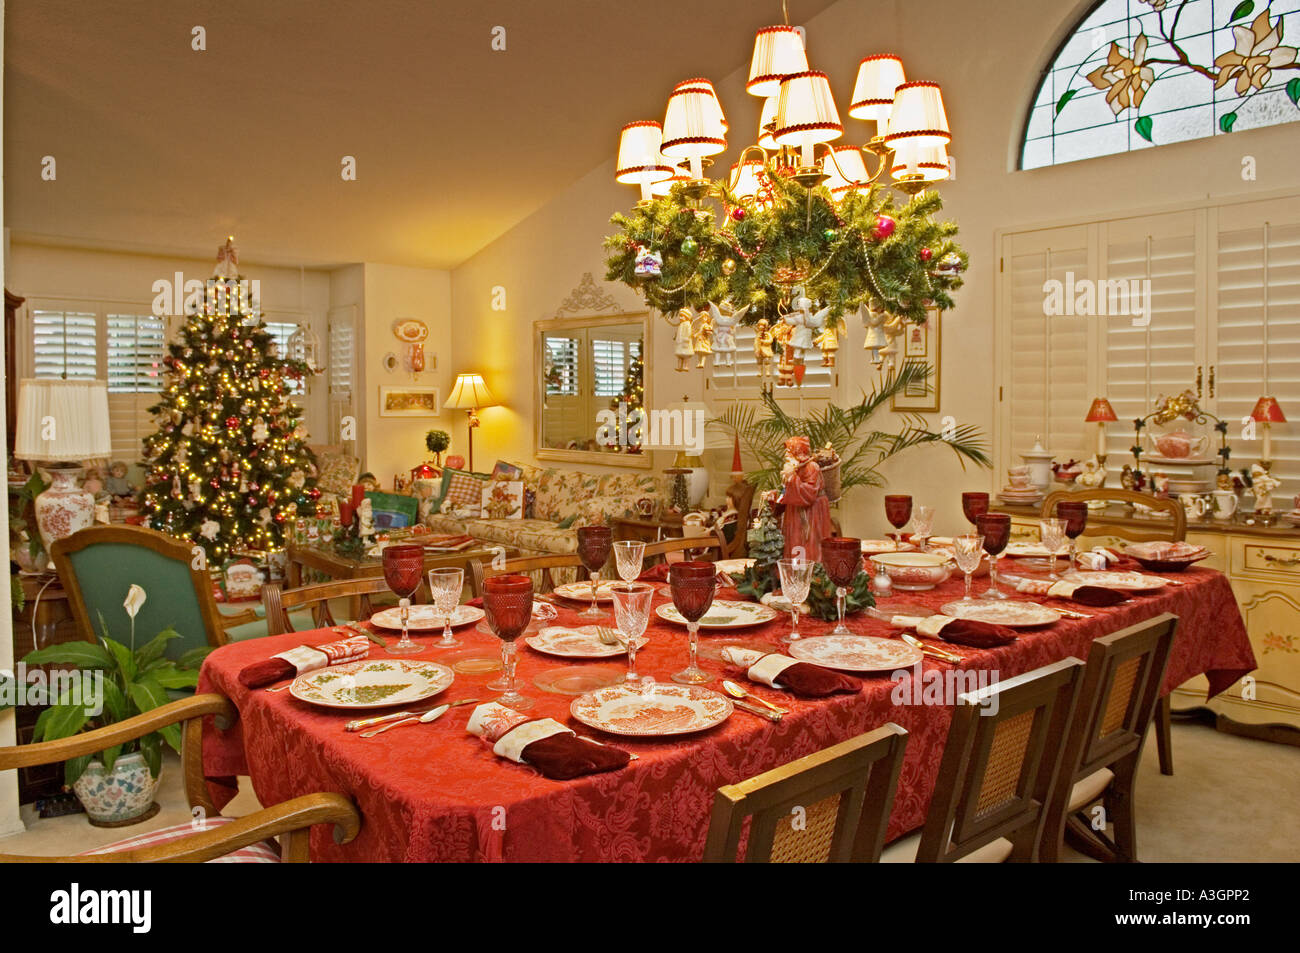 Dining Room Table Set For Christmas Dinner In Living Room Of Upscale